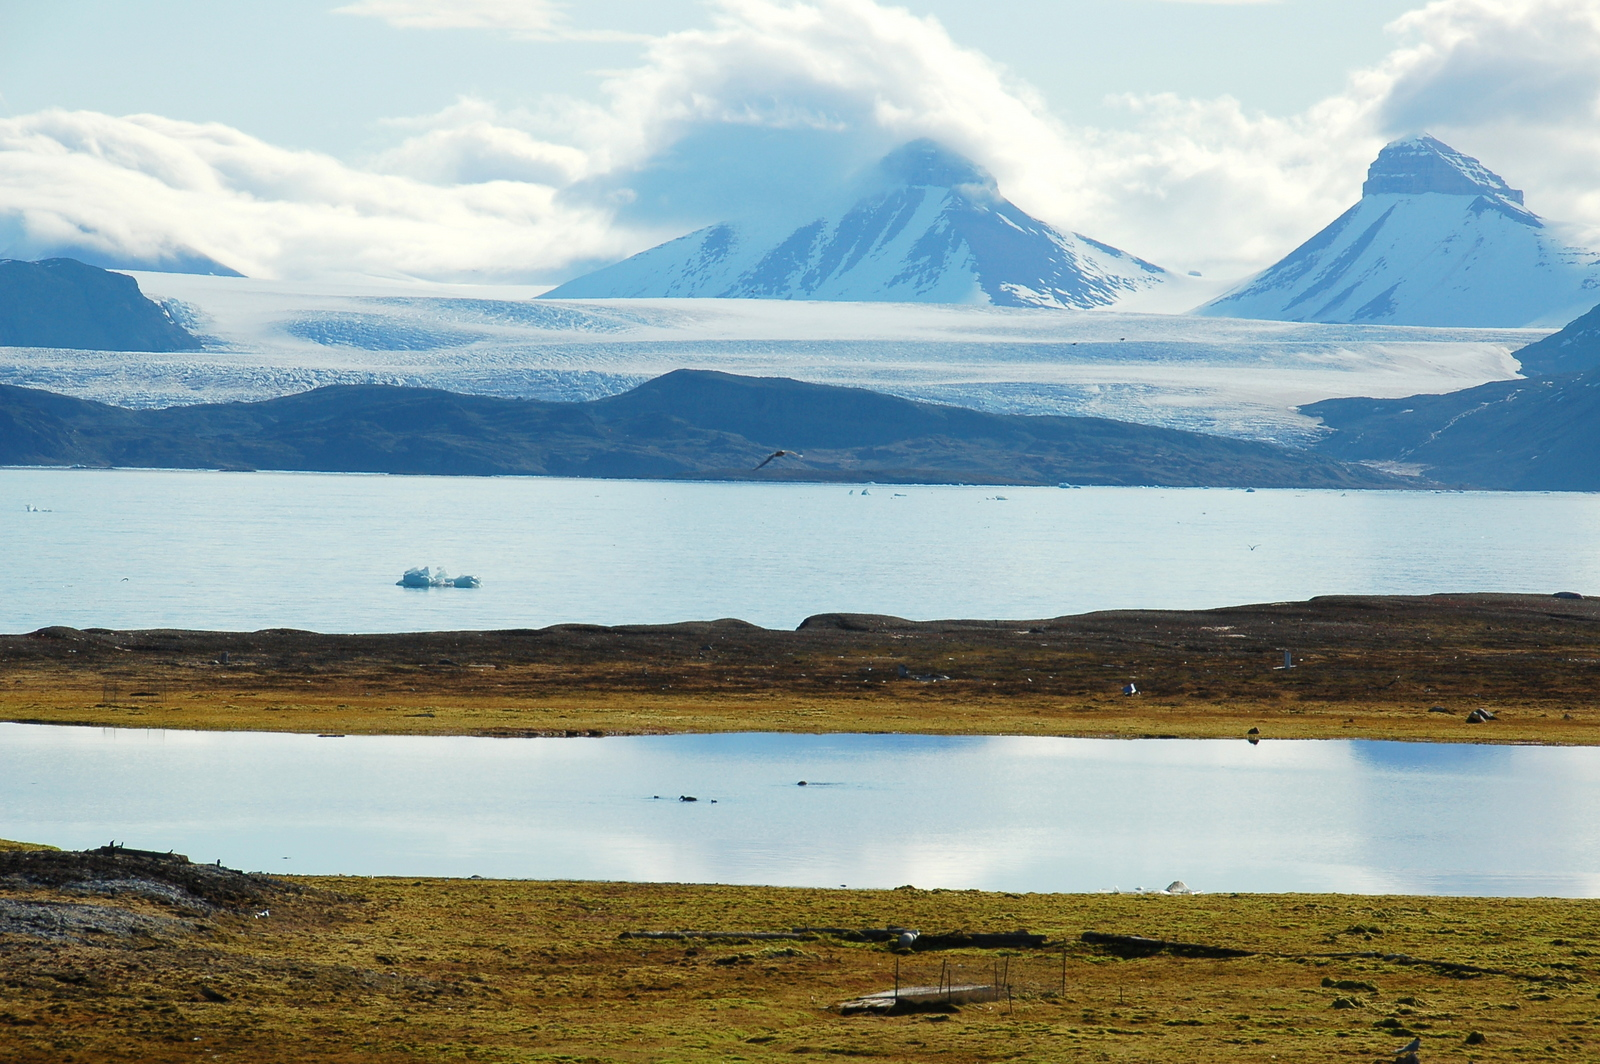 Svalbard: Ny Ålesund. Note: this lake was not part of the study. Courtesy of James Stringer/Flickr